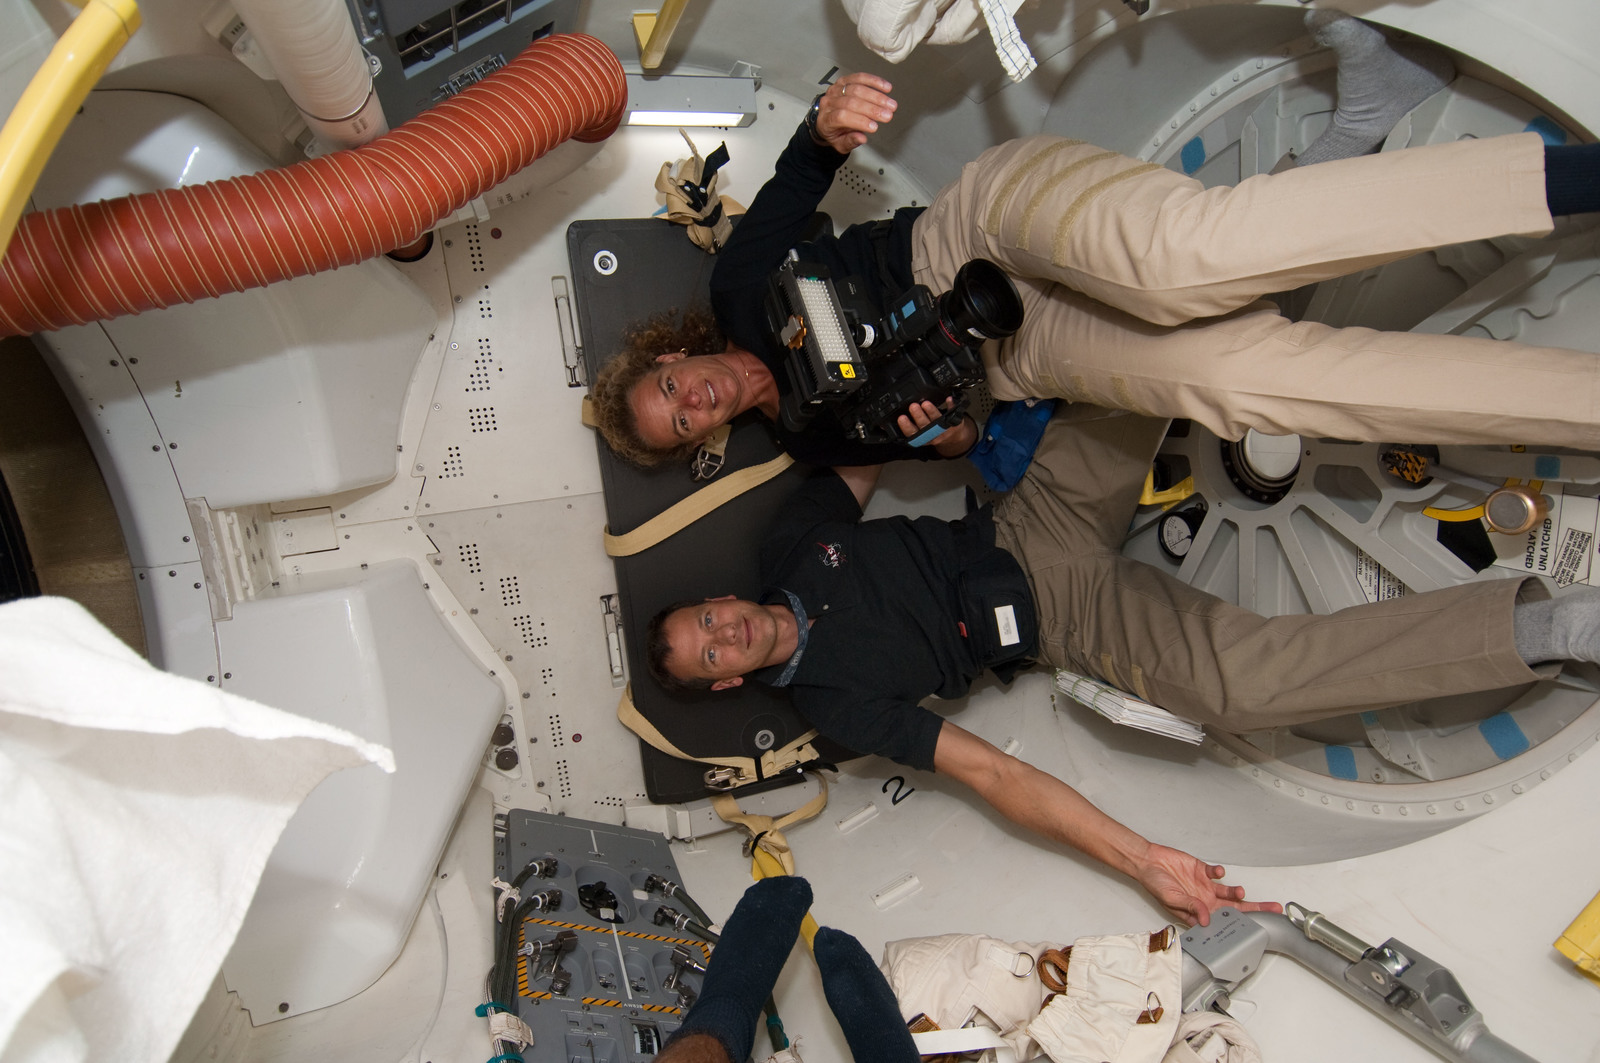 S127E006727 - STS-127 - Payette and Marshburn in the A/L during STS-127 Mission